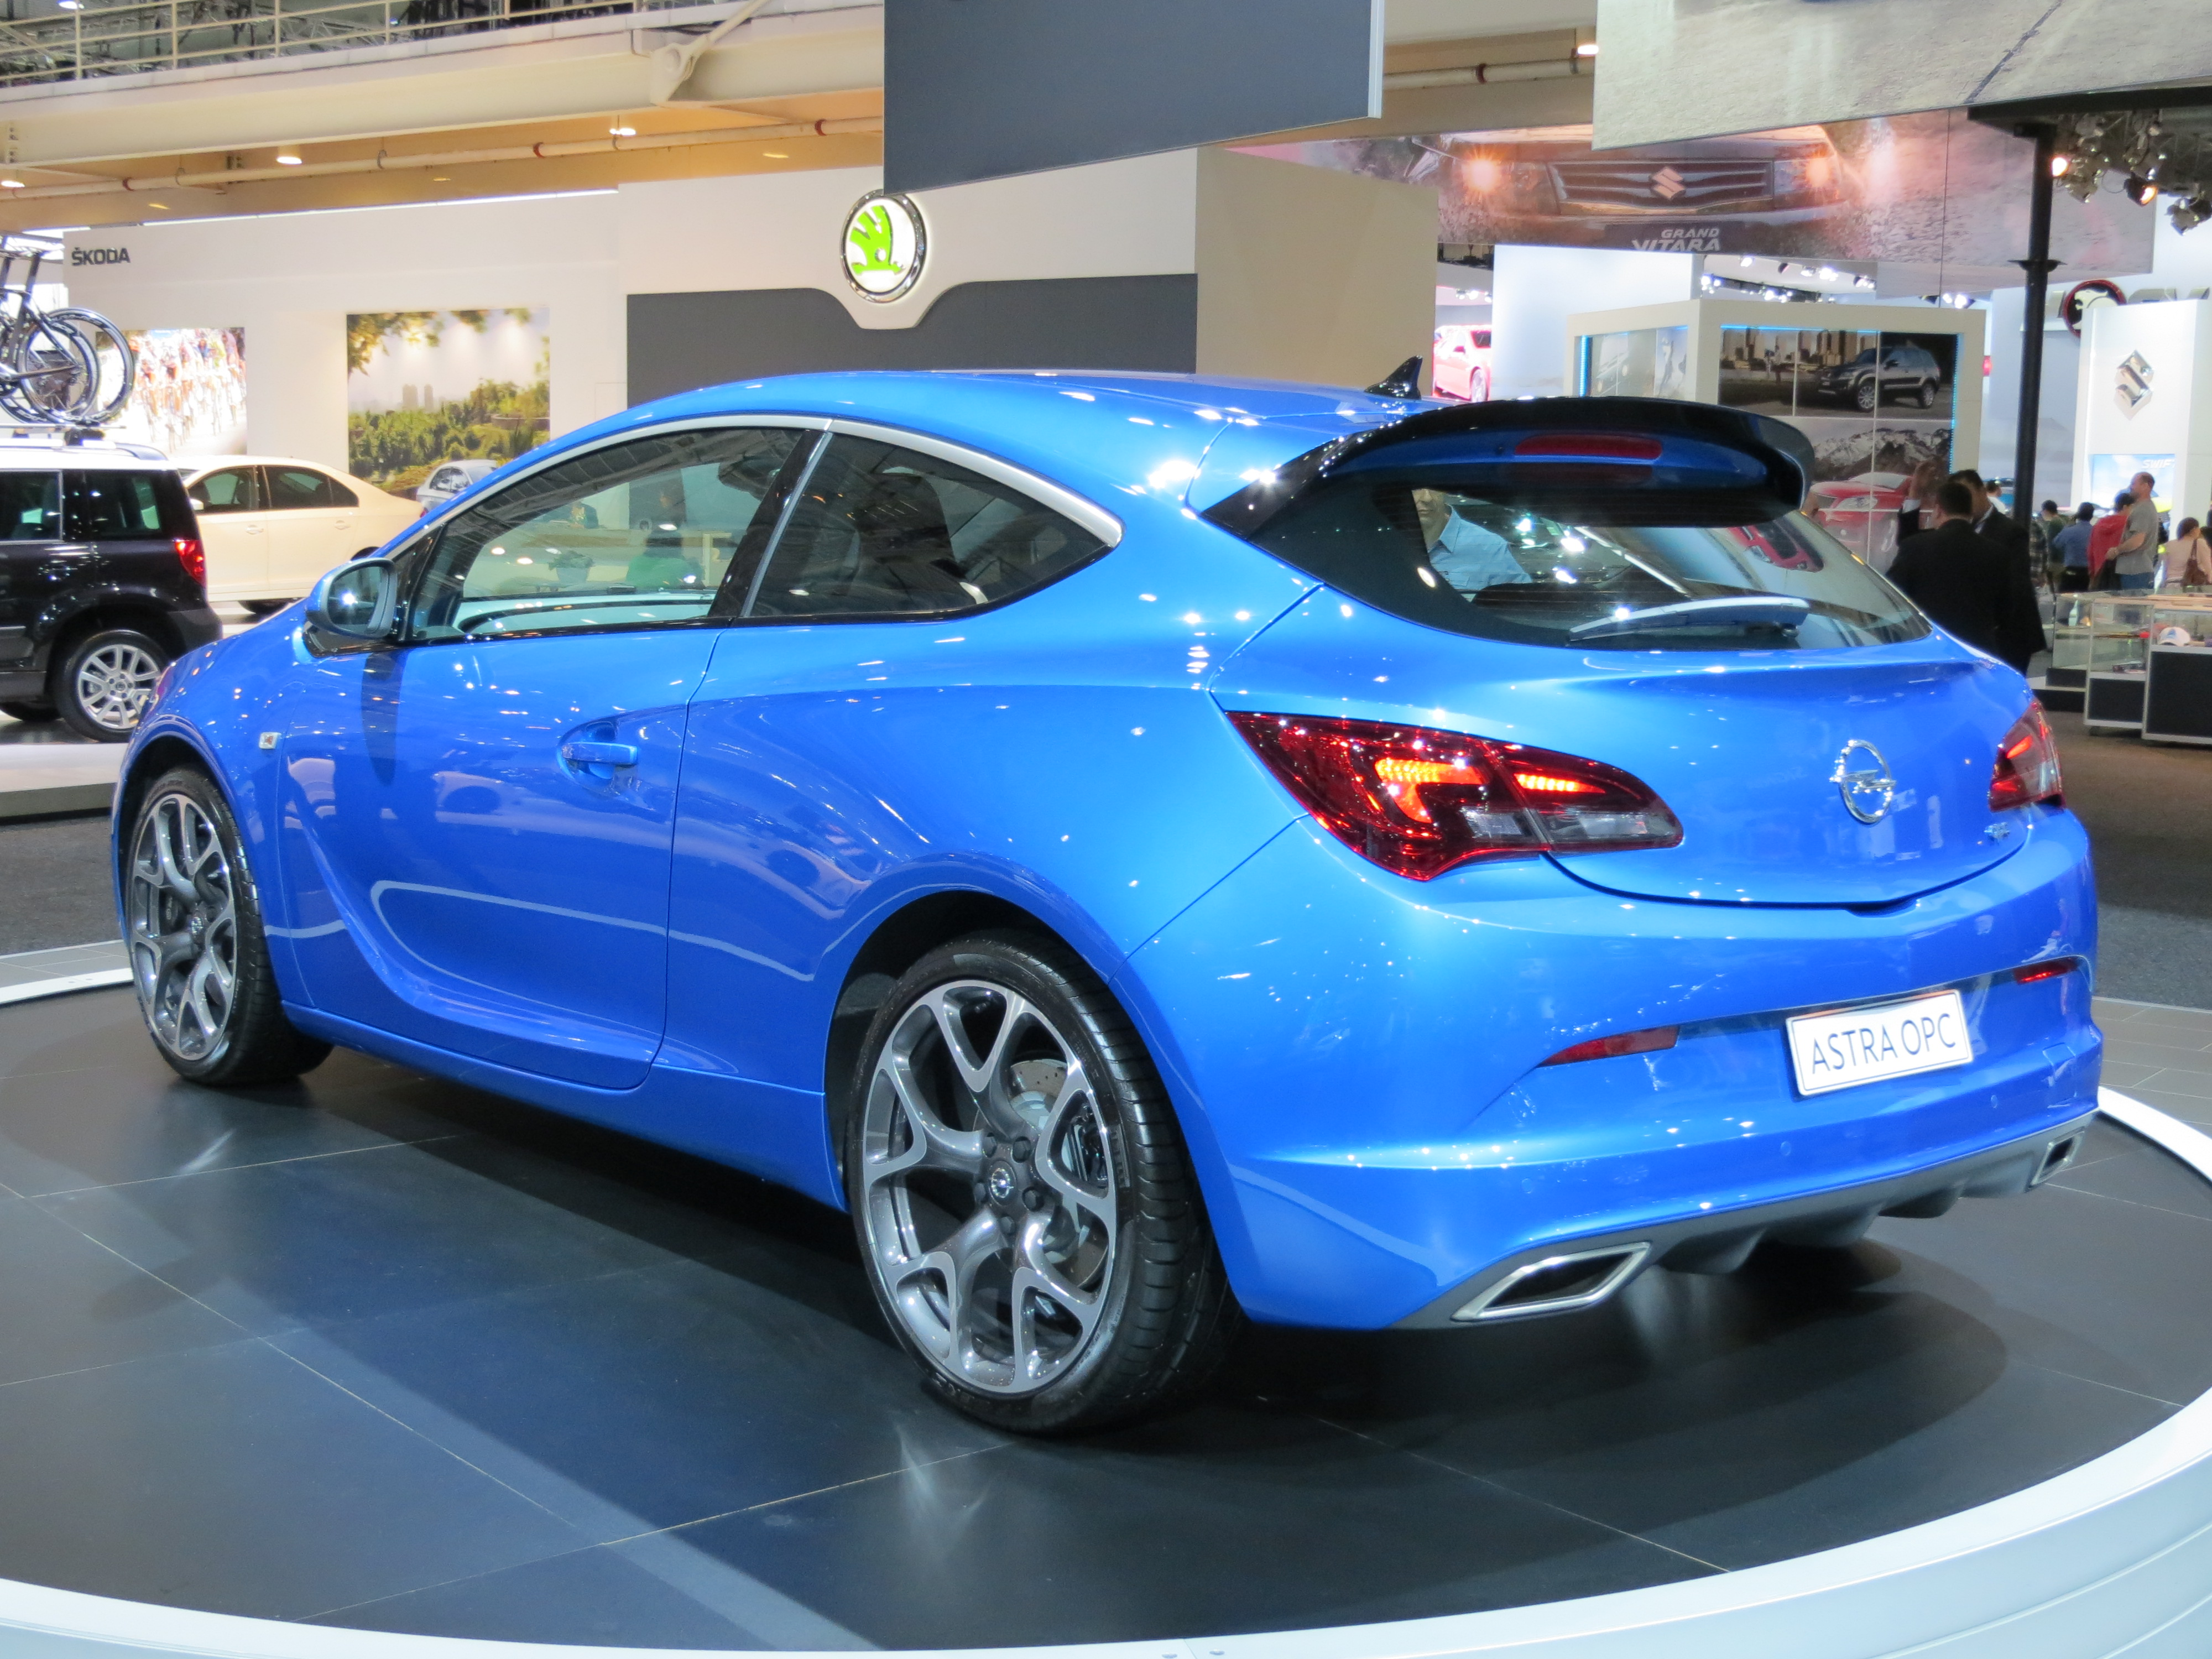 File:2012 Opel Astra (AS) OPC 3-door hatchback (2012- & File:2012 Opel Astra (AS) OPC 3-door hatchback (2012-10-26) 03.jpg ... Pezcame.Com